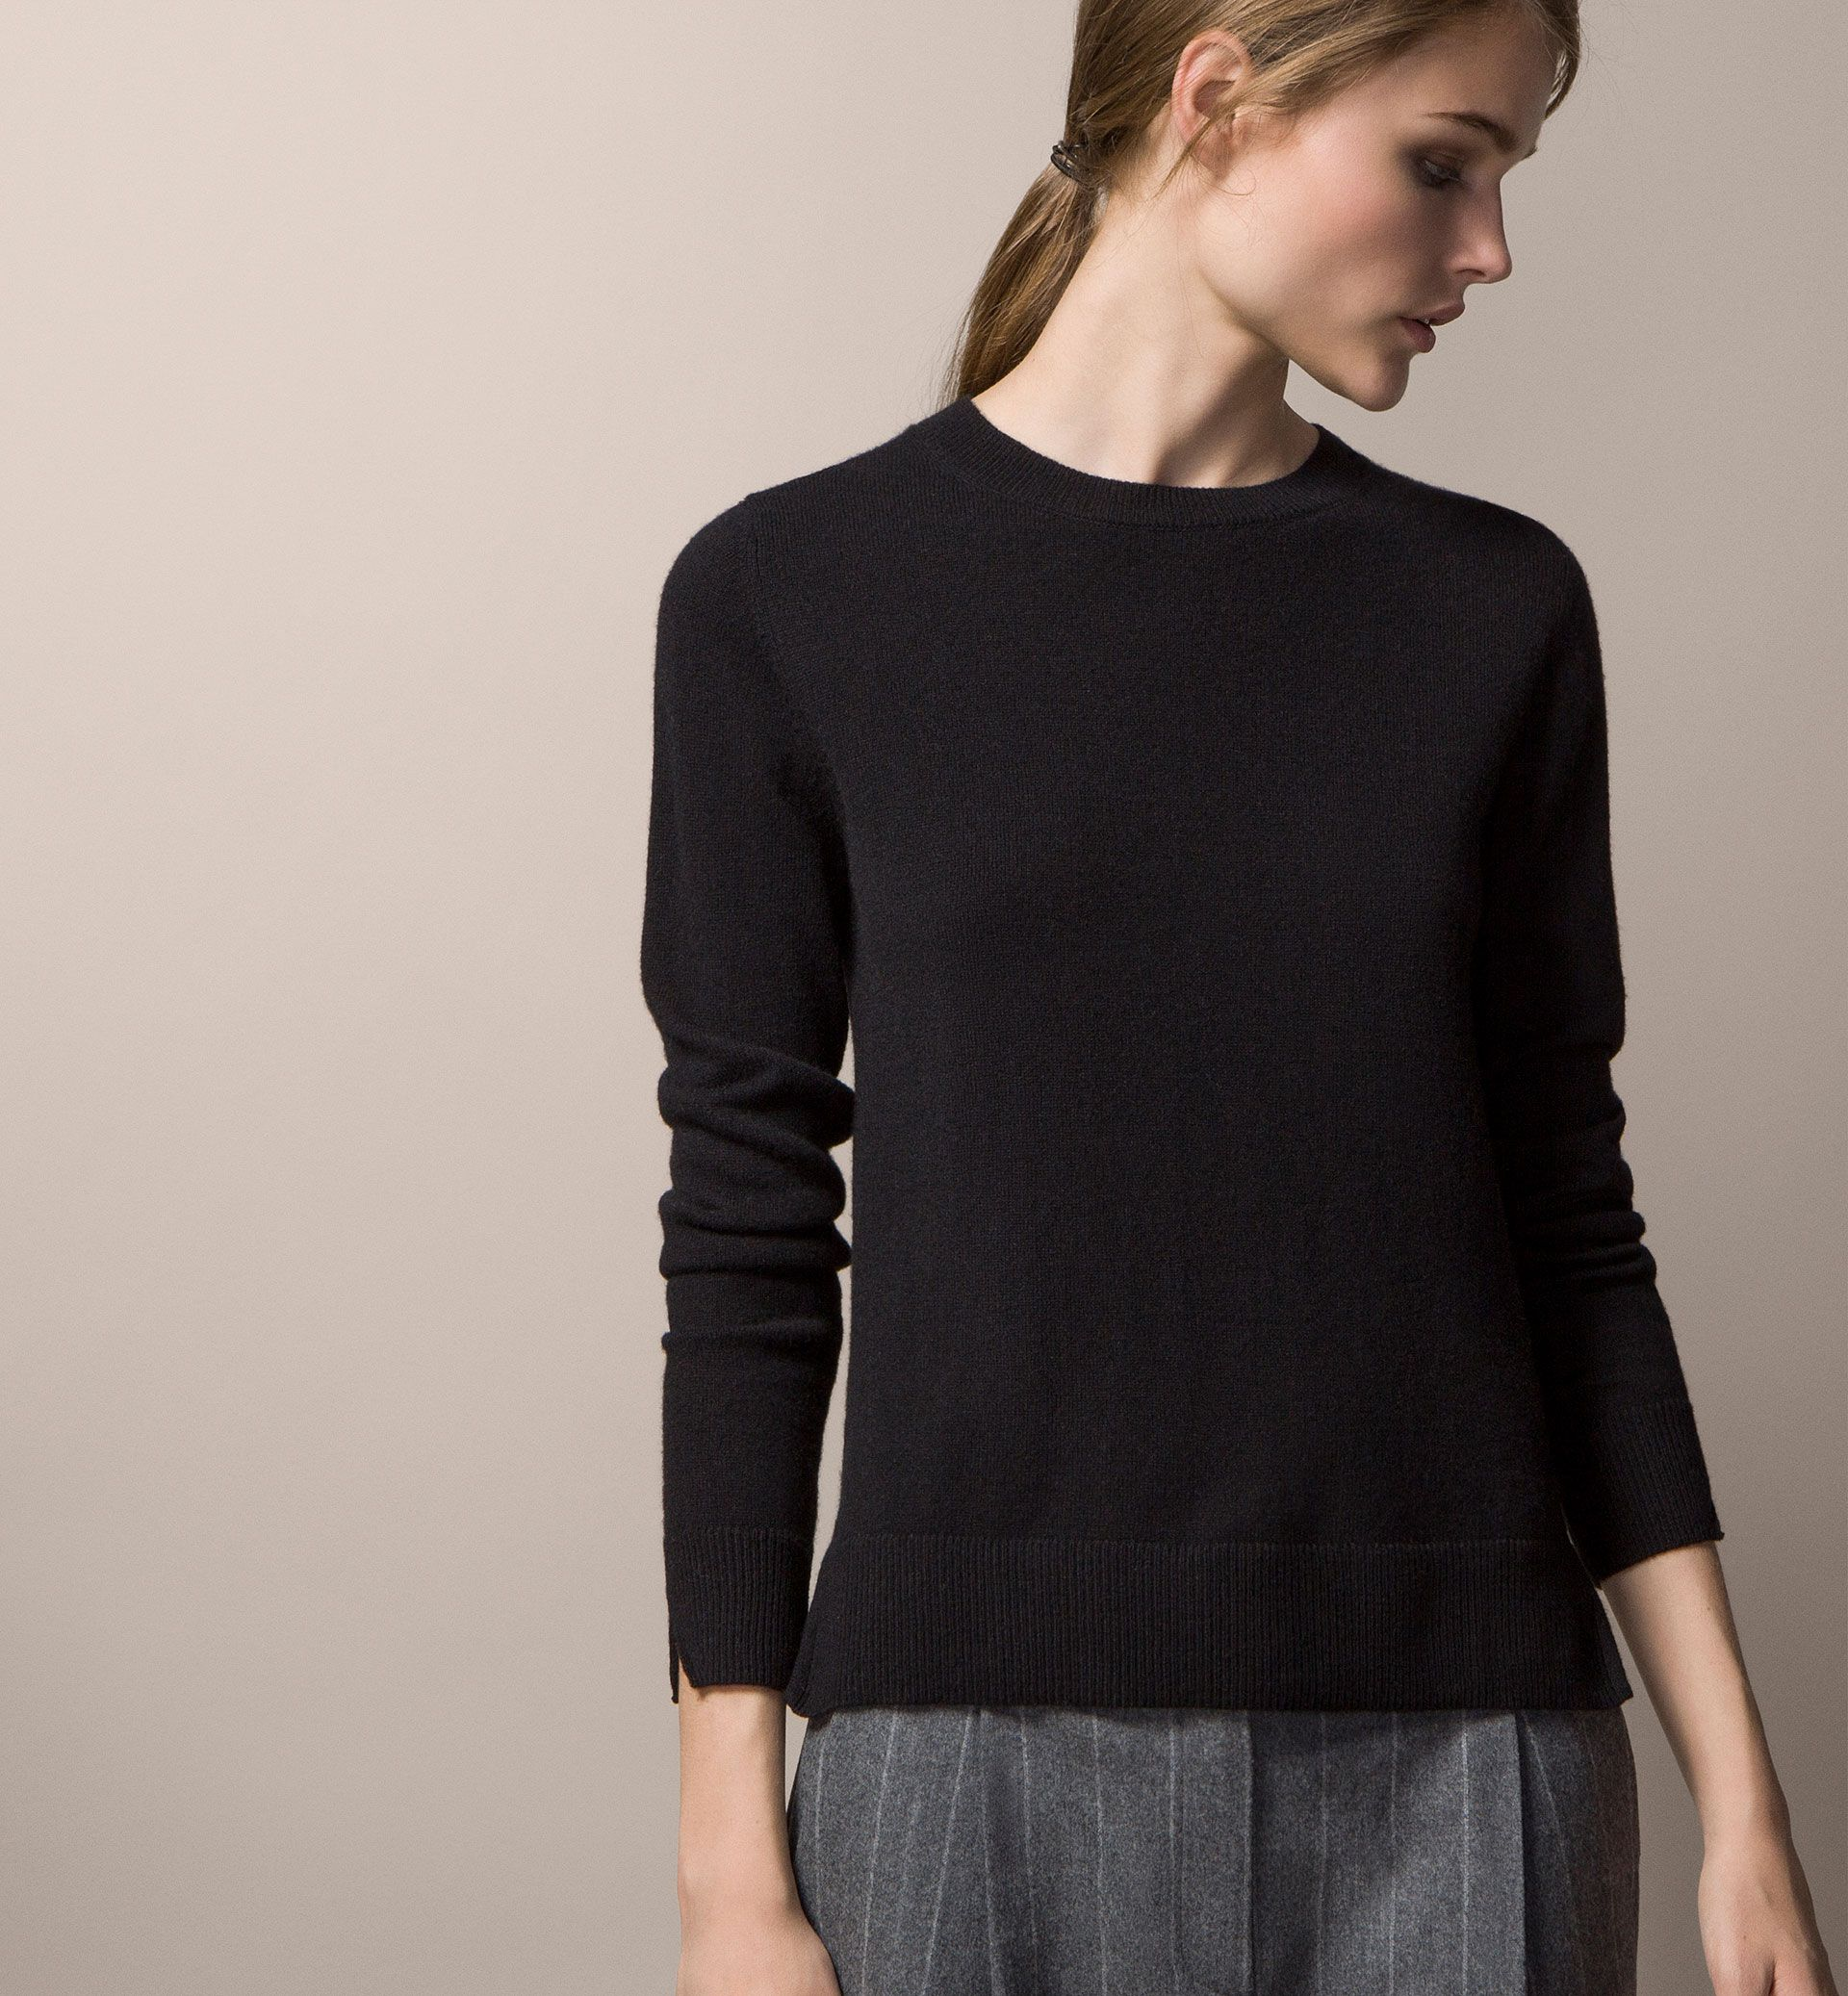 100% CASHMERE SWEATER - Wardrobe Essentials - WOMEN - United ...